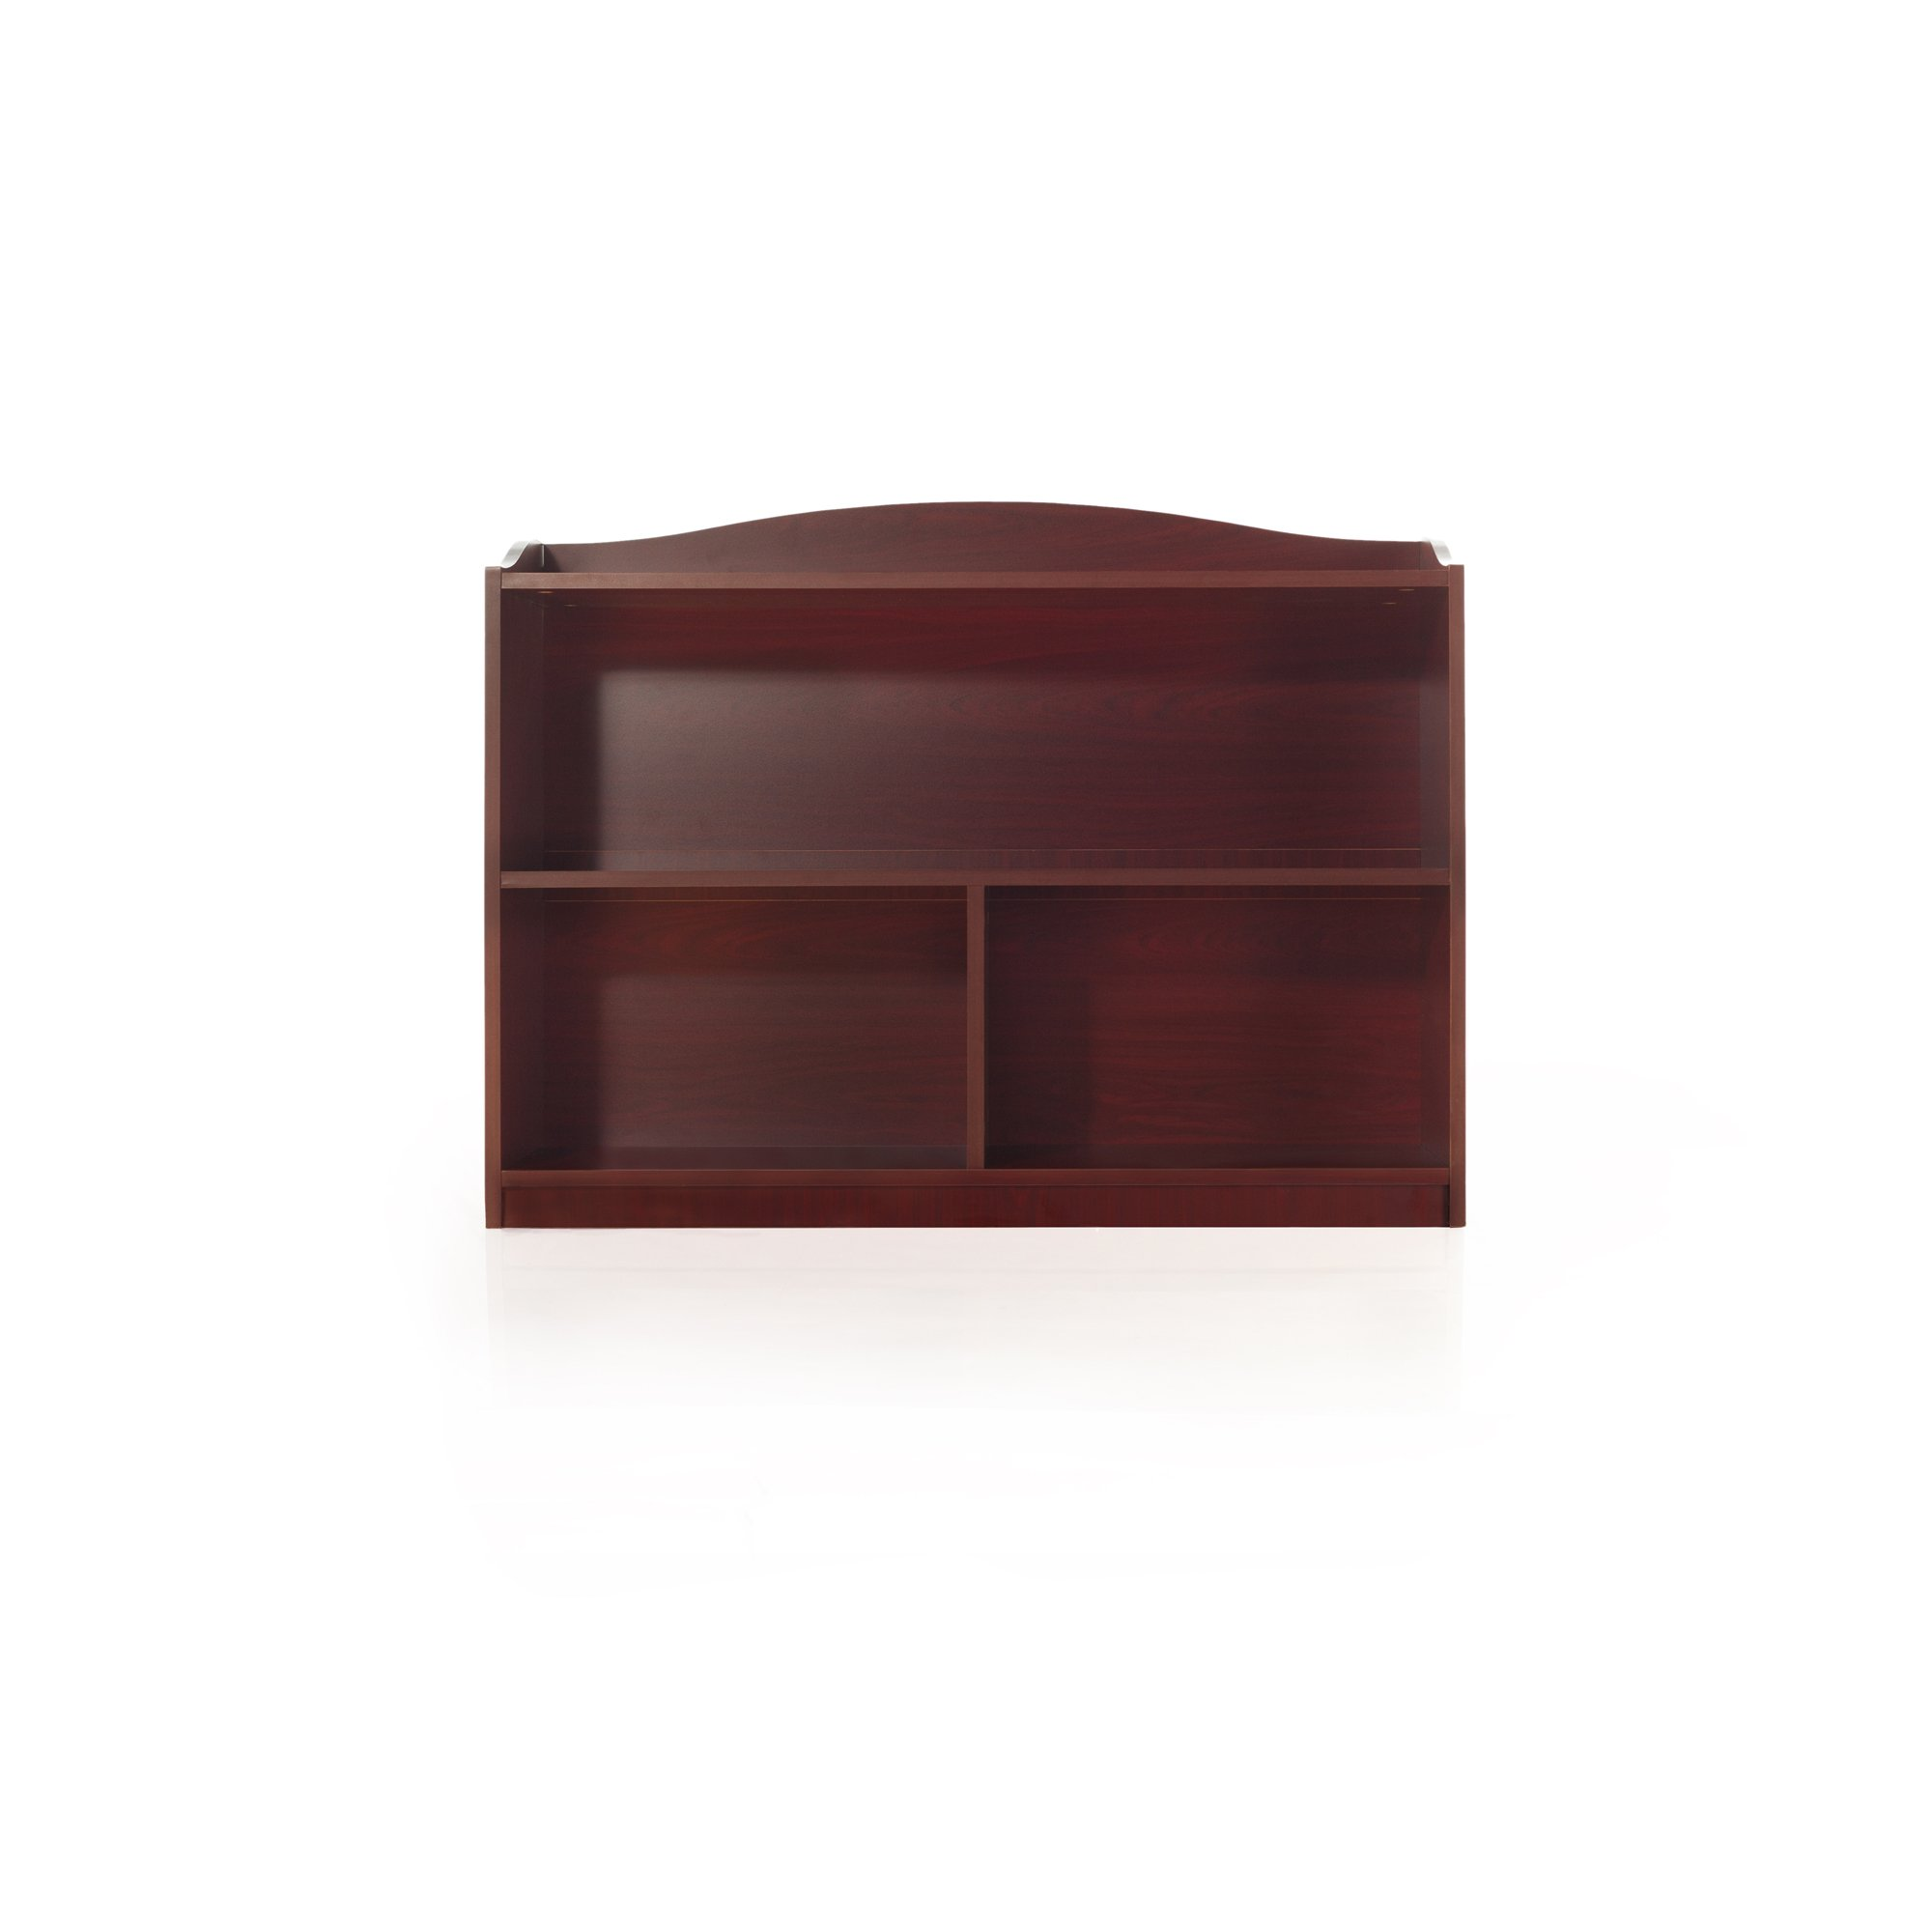 Guidecraft 3-Shelf Cherry Bookcase - Shelves, Home & Office Organizer Furniture, Book Display by Guidecraft (Image #3)